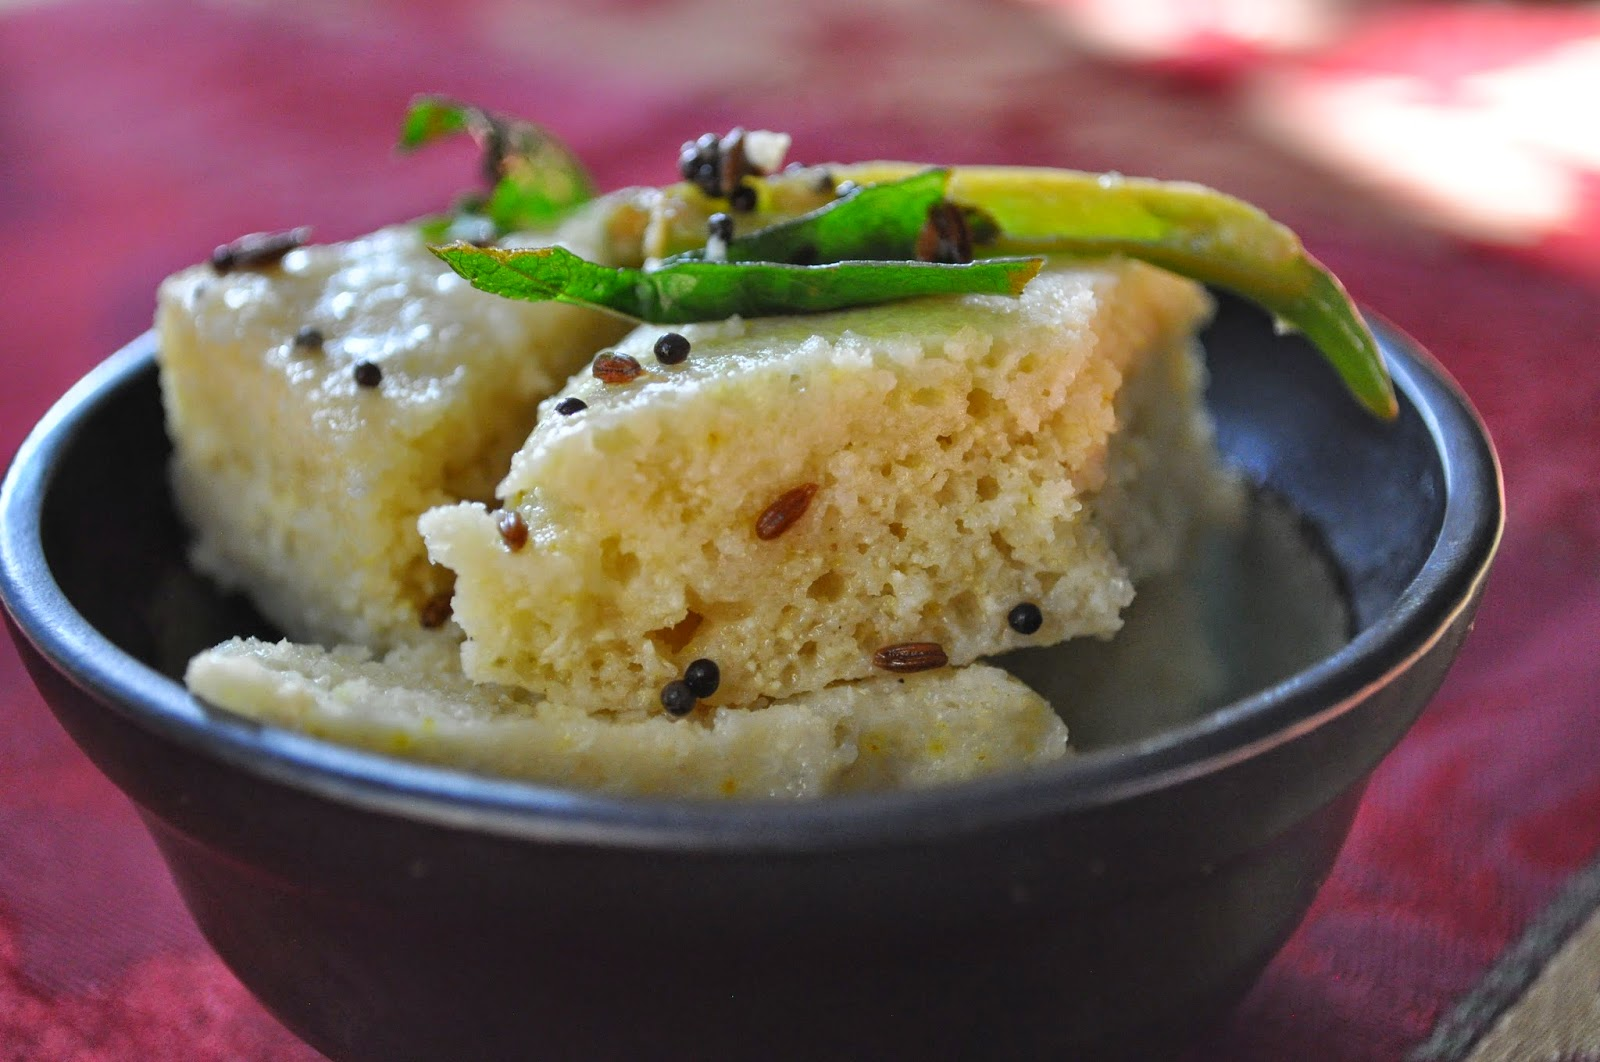 Cooking with meena cooking from another blog quinoa dhokla this recipe for quinoa dhokla was perfect i have made it a couple of times now once for a party and everyone loved it thanks ruchi for a great recipe forumfinder Image collections